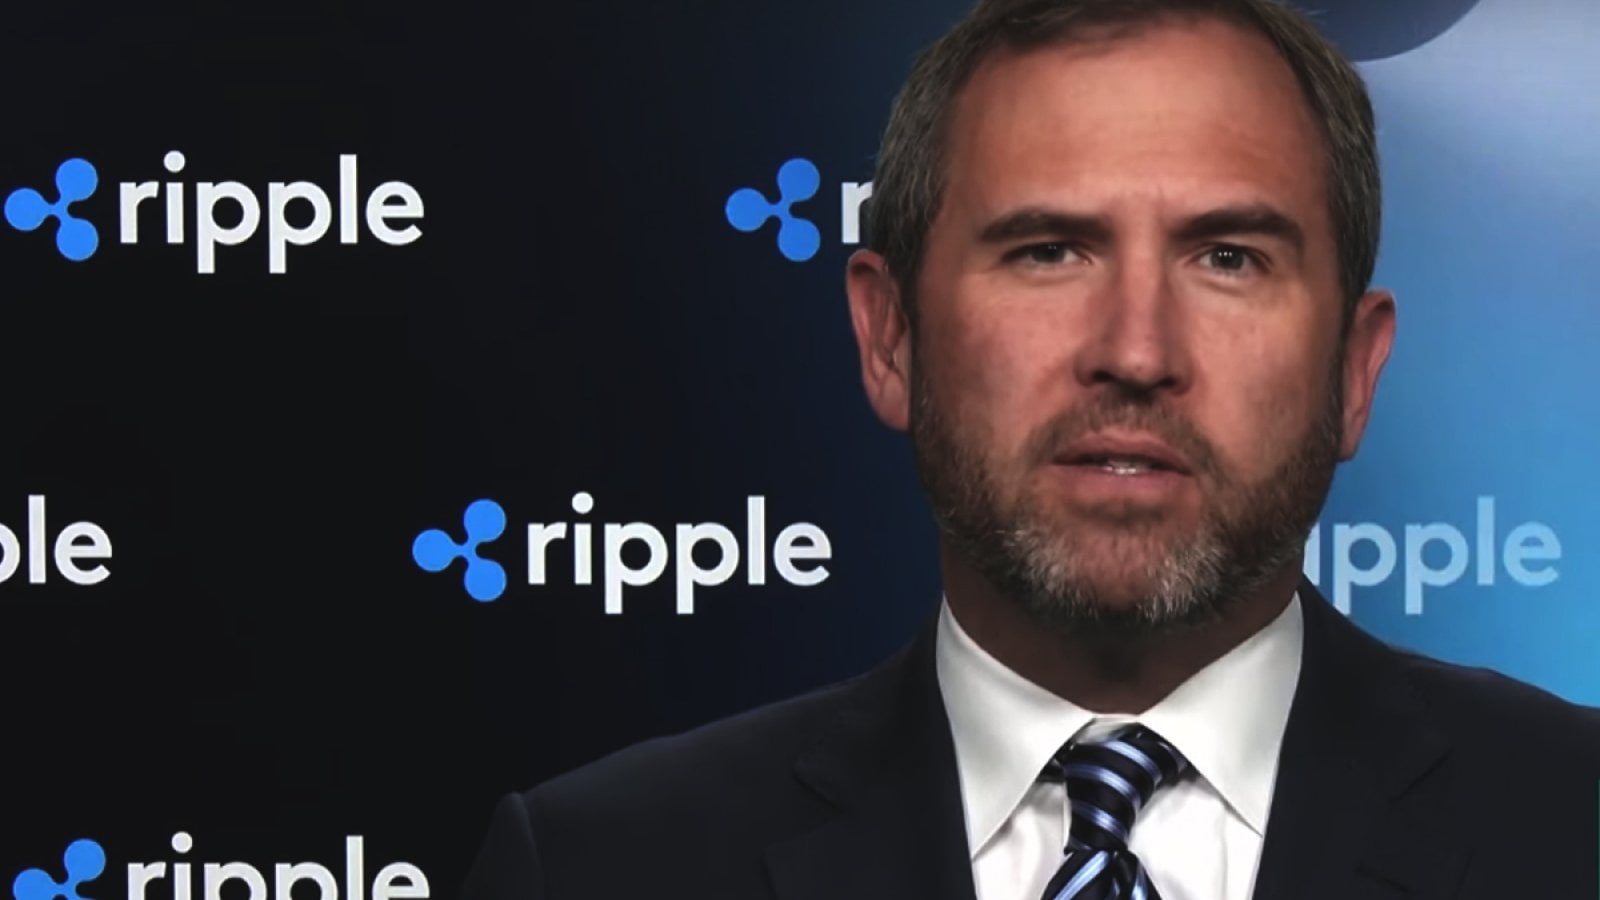 rippleceo brad garlinghouse breaks his silence on controversial xrp sales.jpg